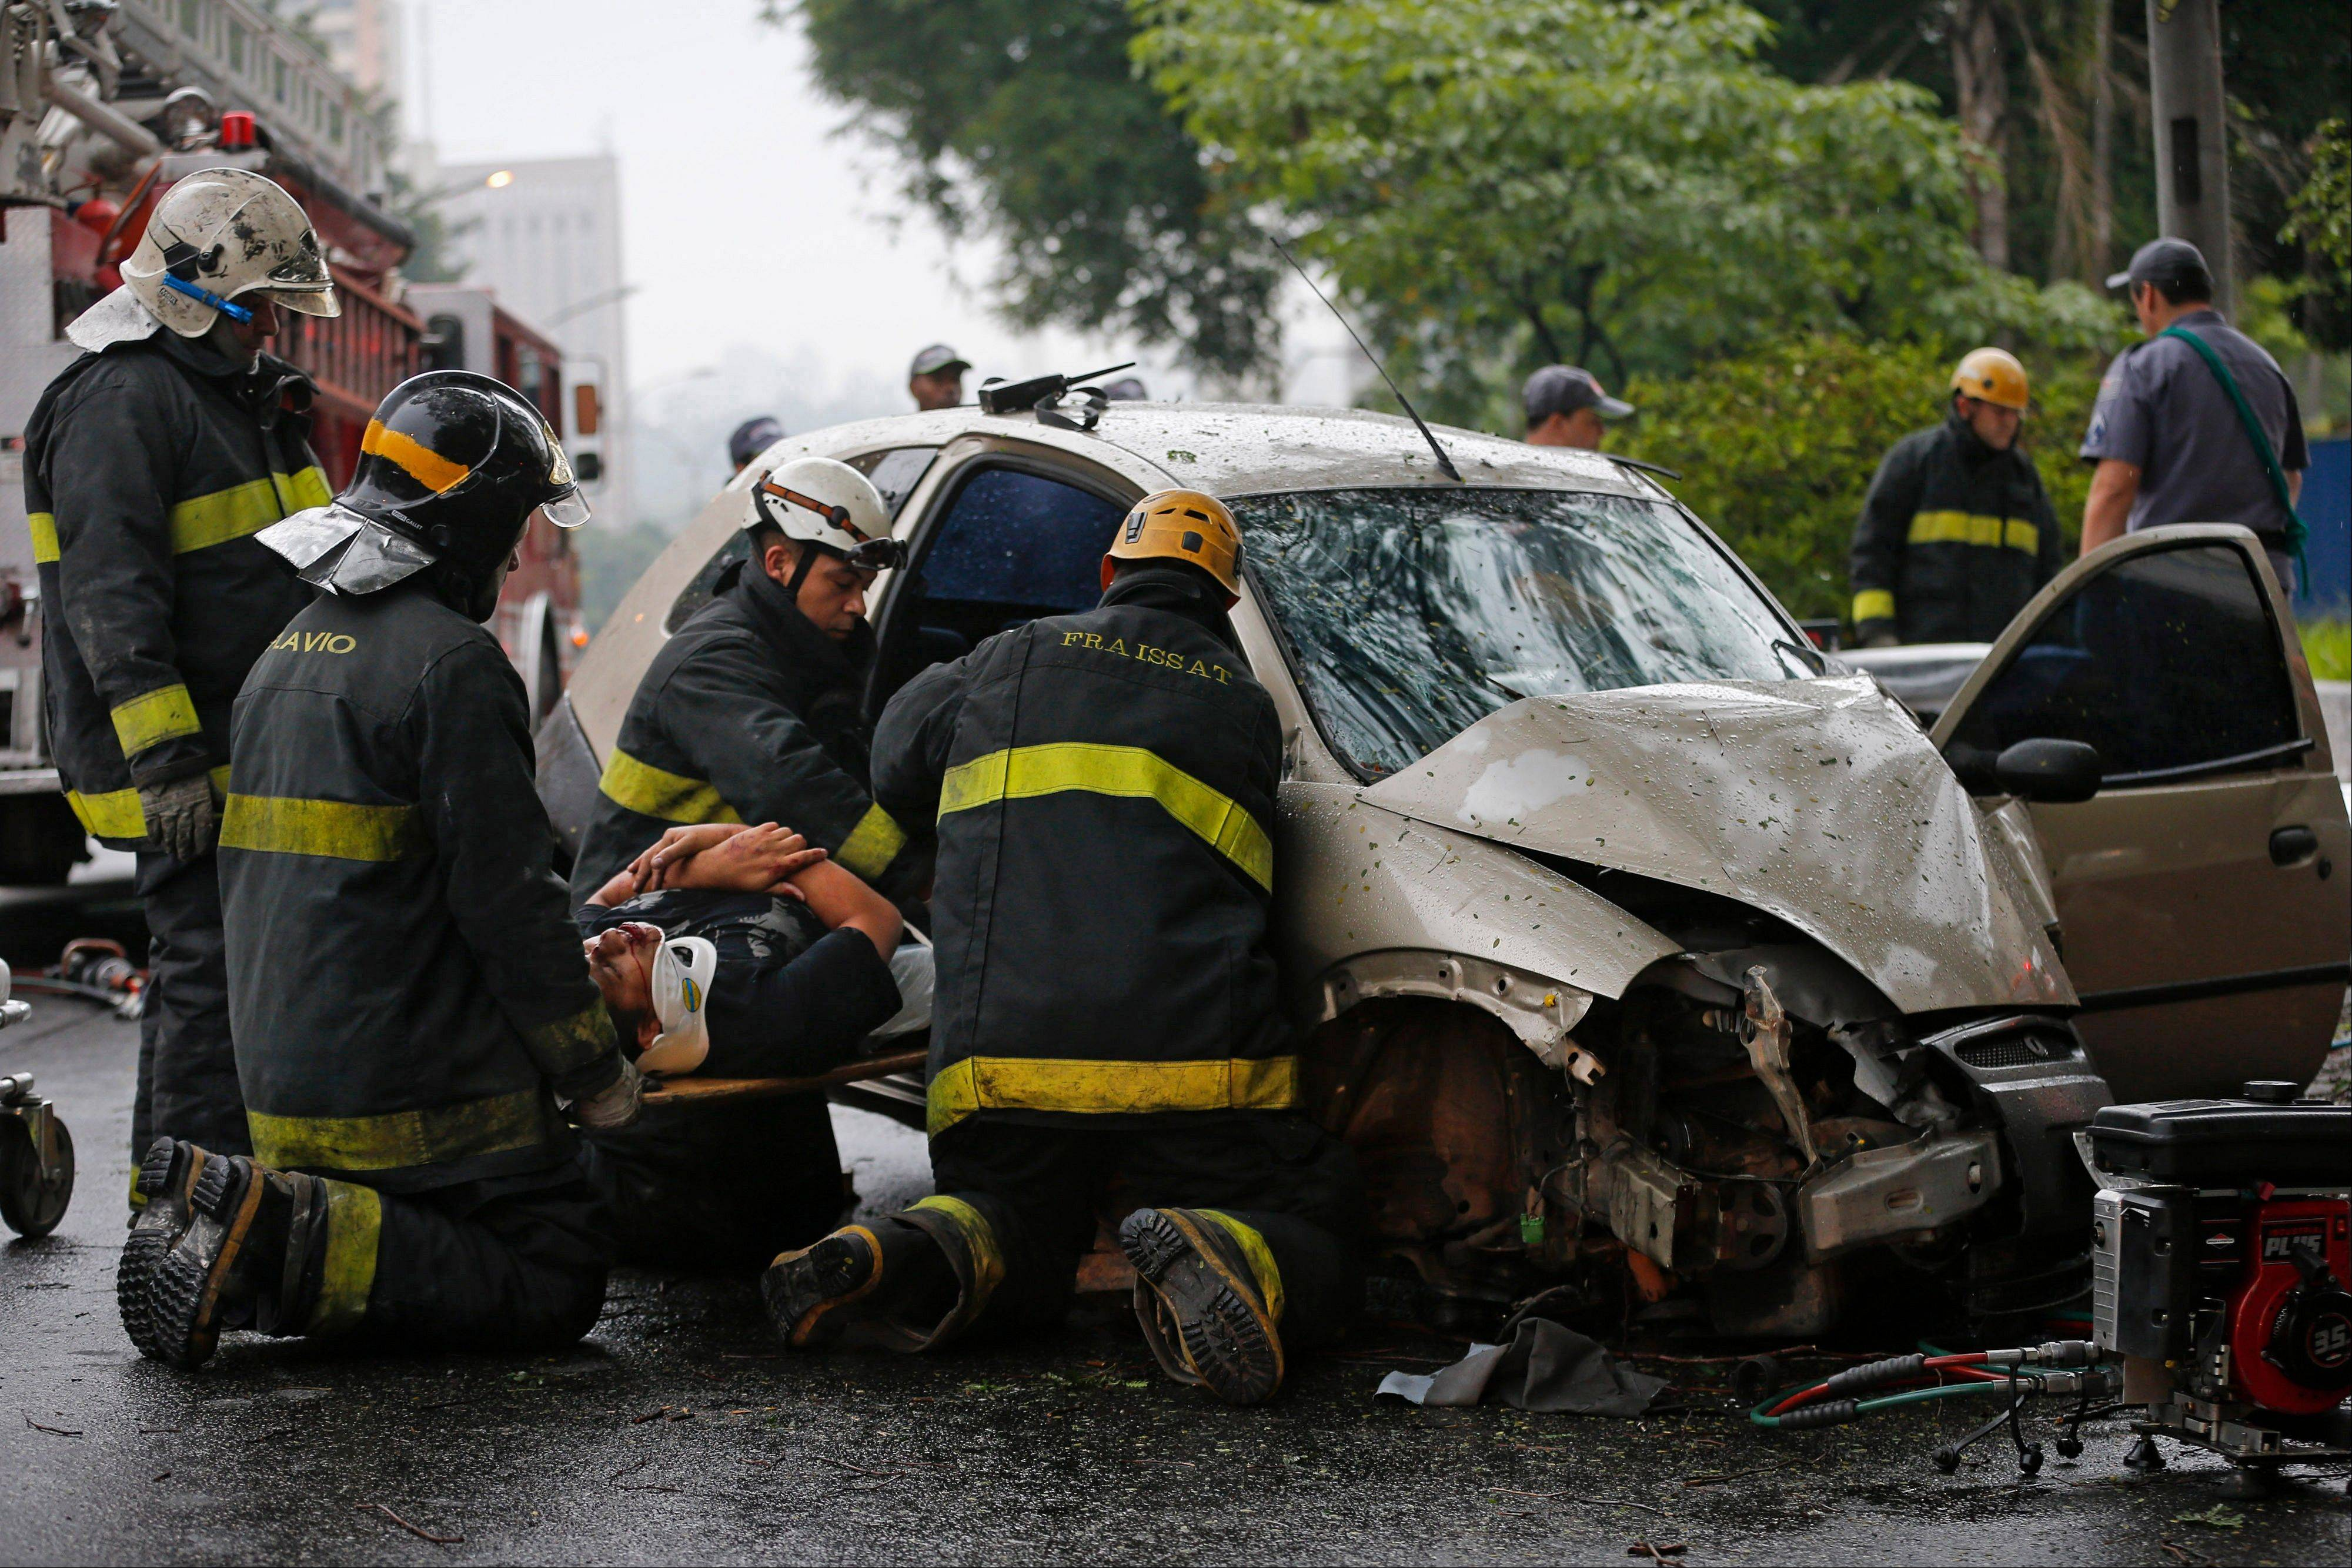 Associated Press/Nov. 25, 2012 Firefighters rescue a man from a car crash in Sao Paulo, Brazil. Three men were injured when they lost control of their Ford Ka car on one of Sao Paulo main avenues during a rainy morning.